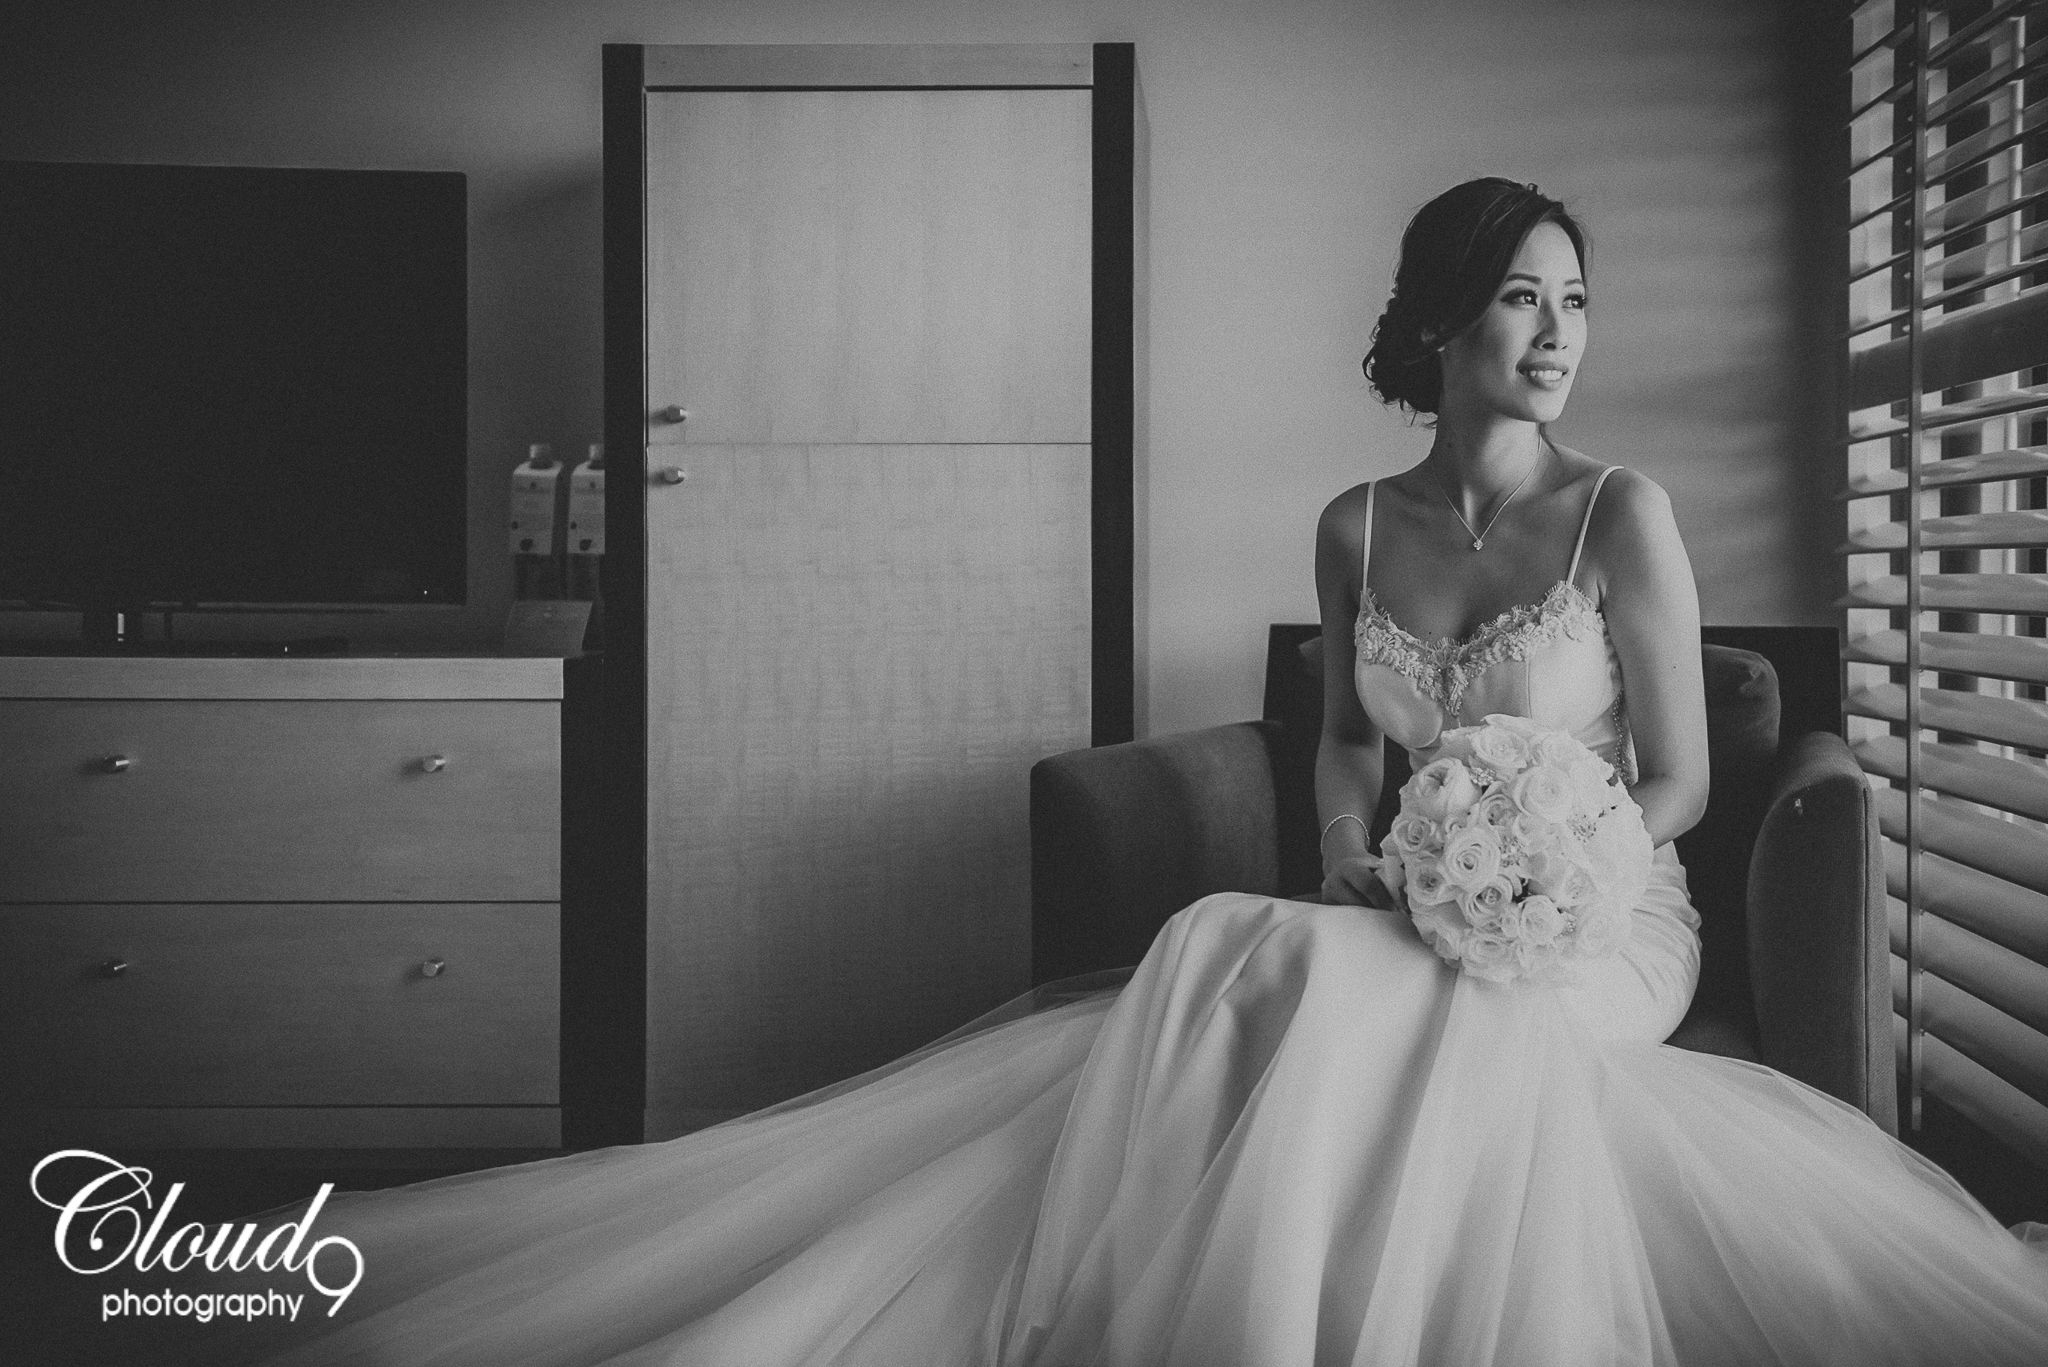 Her hubs is one lucky guy and he totally knows it this bride was